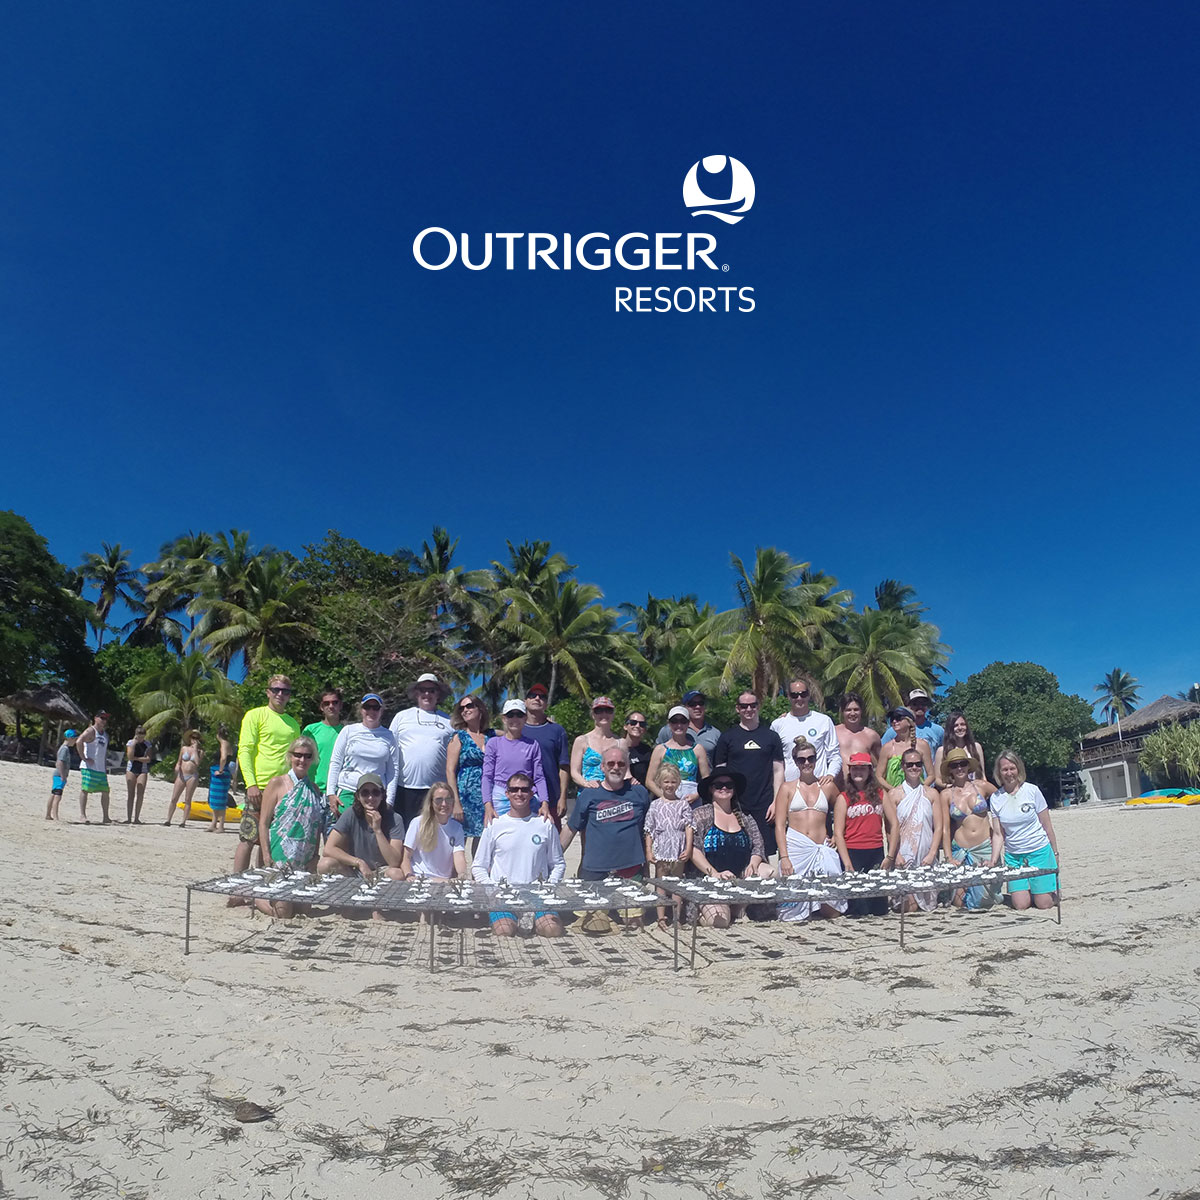 Outrigger Group funds Eco Club in the Mamanucas